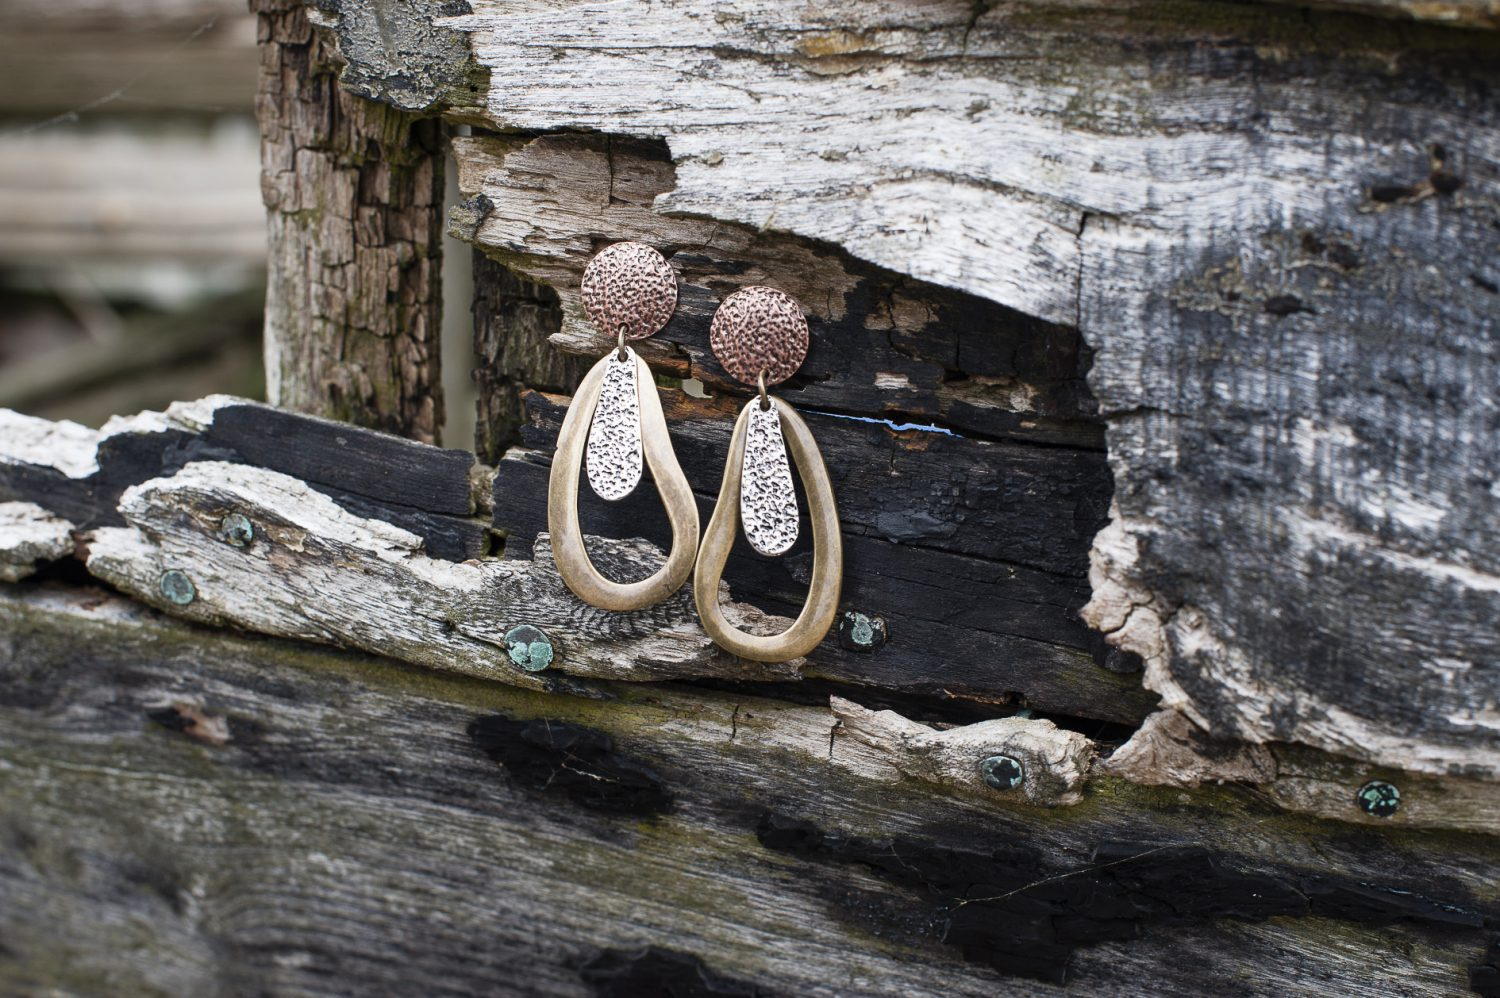 Moon triple metal earrings, £19, Who's Wearing What Boutique, St Leonards whoswearingwhat-boutique.co.uk